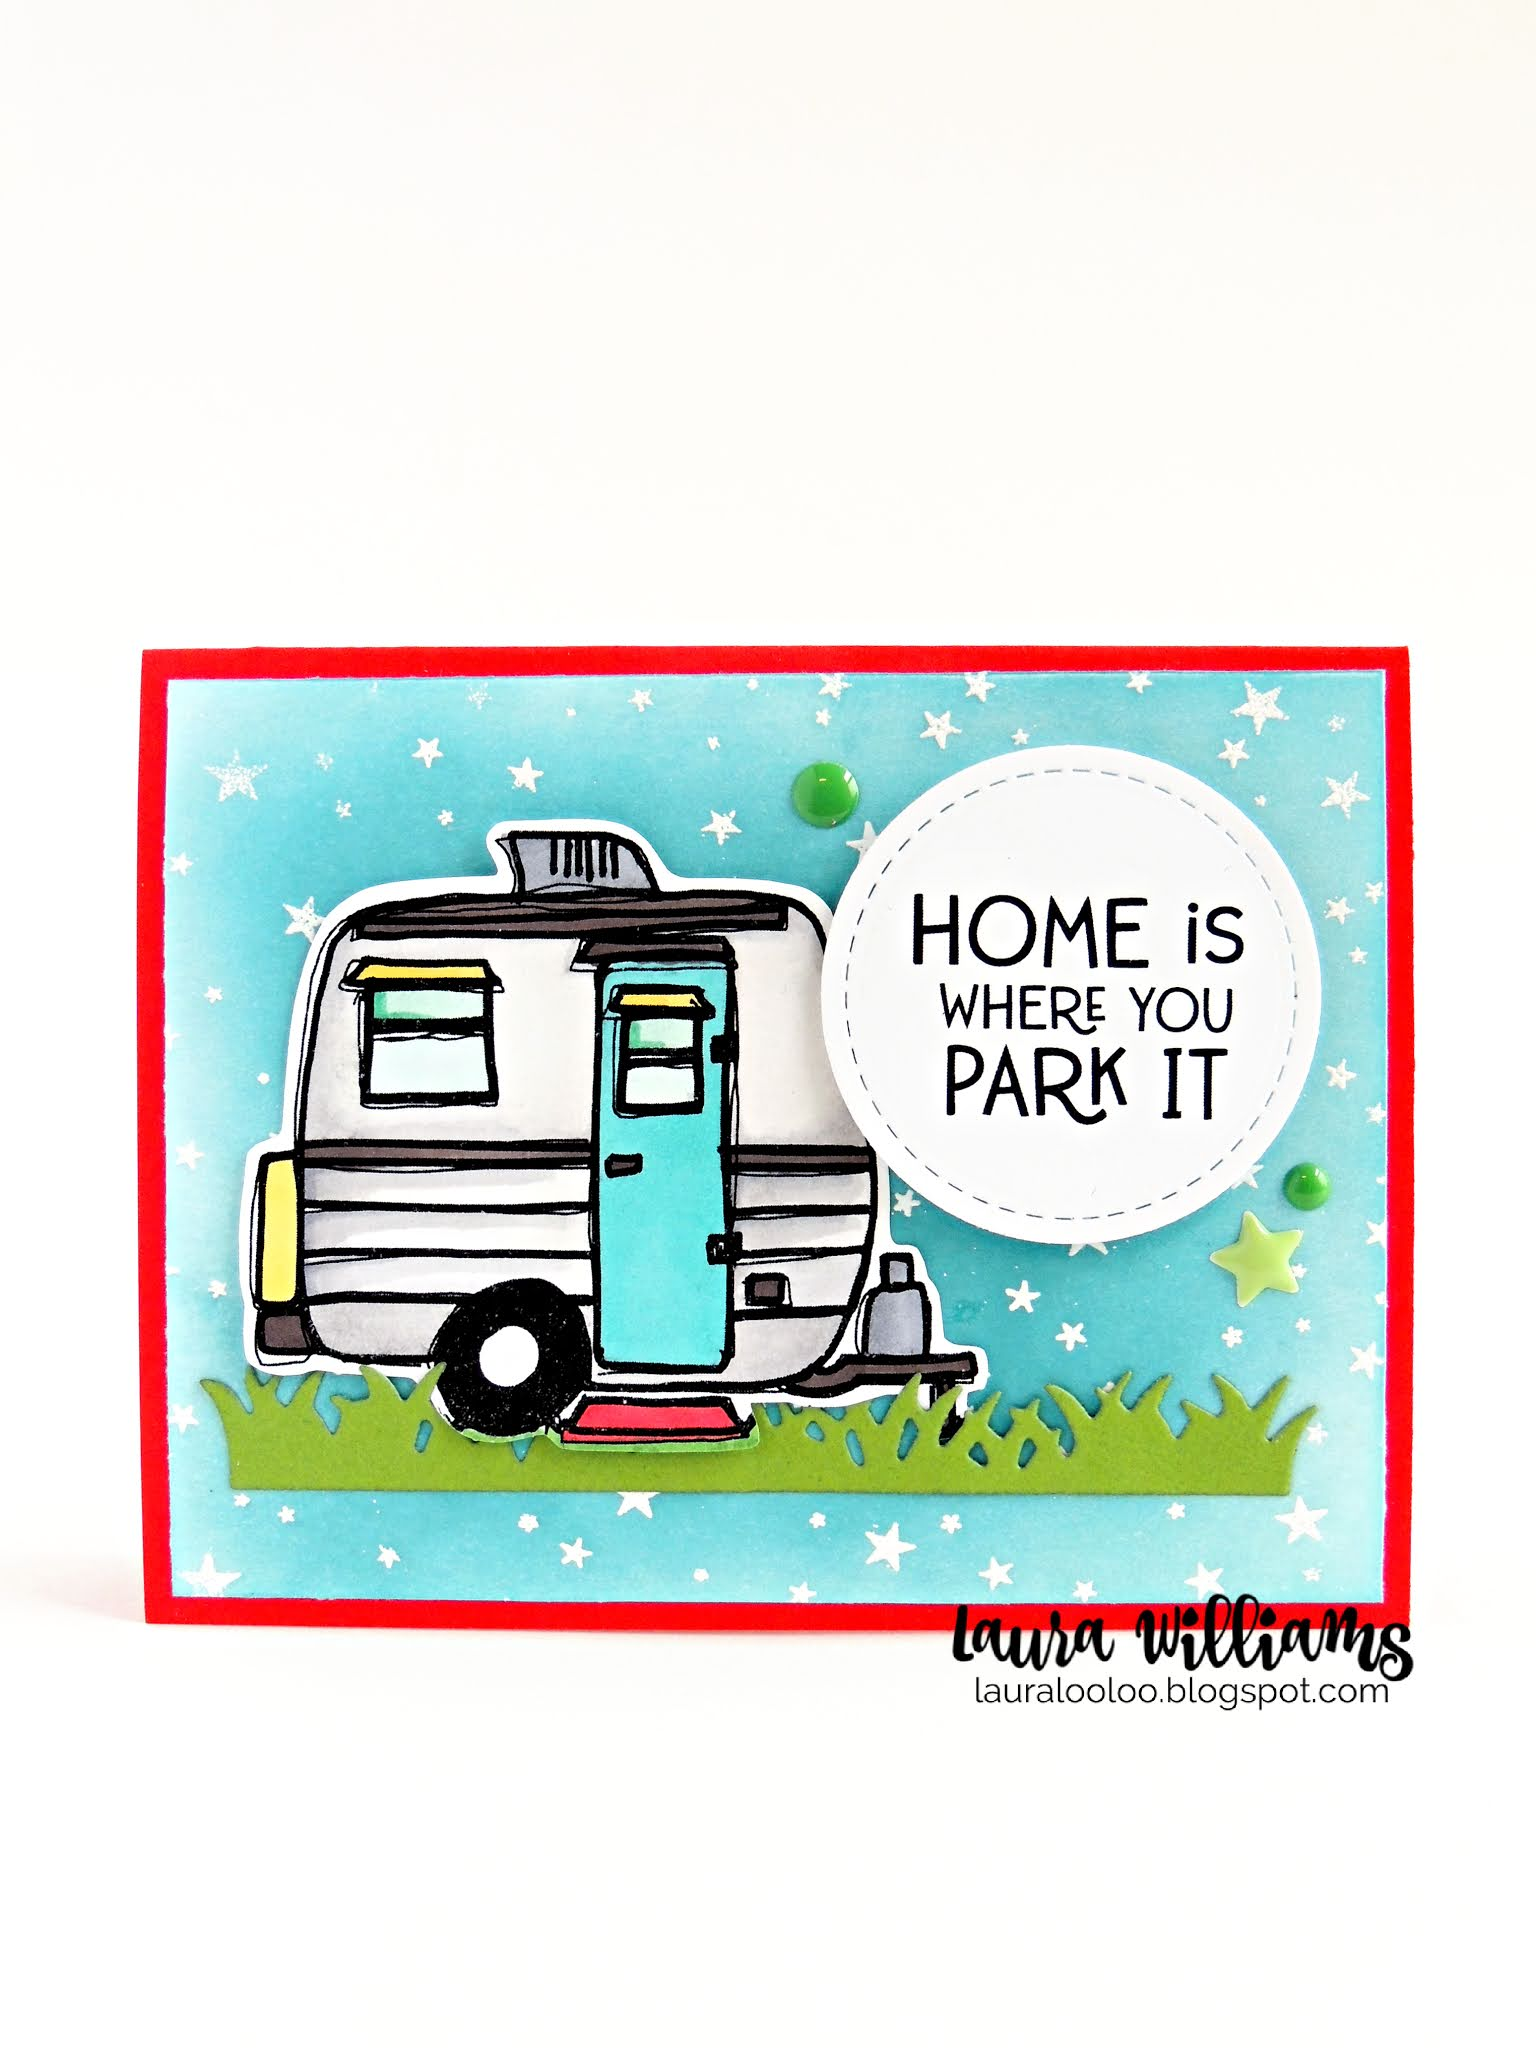 Home Is Where You Park It! You'll love the cute sentiment and adorable trailer (or camper) stamp from Impression Obsession for handmade cards and crafts. This image is fun to color and paper-piece for cardmaking and paper crafted projects. Check out more ideas on my blog for this sweet rubber stamp.